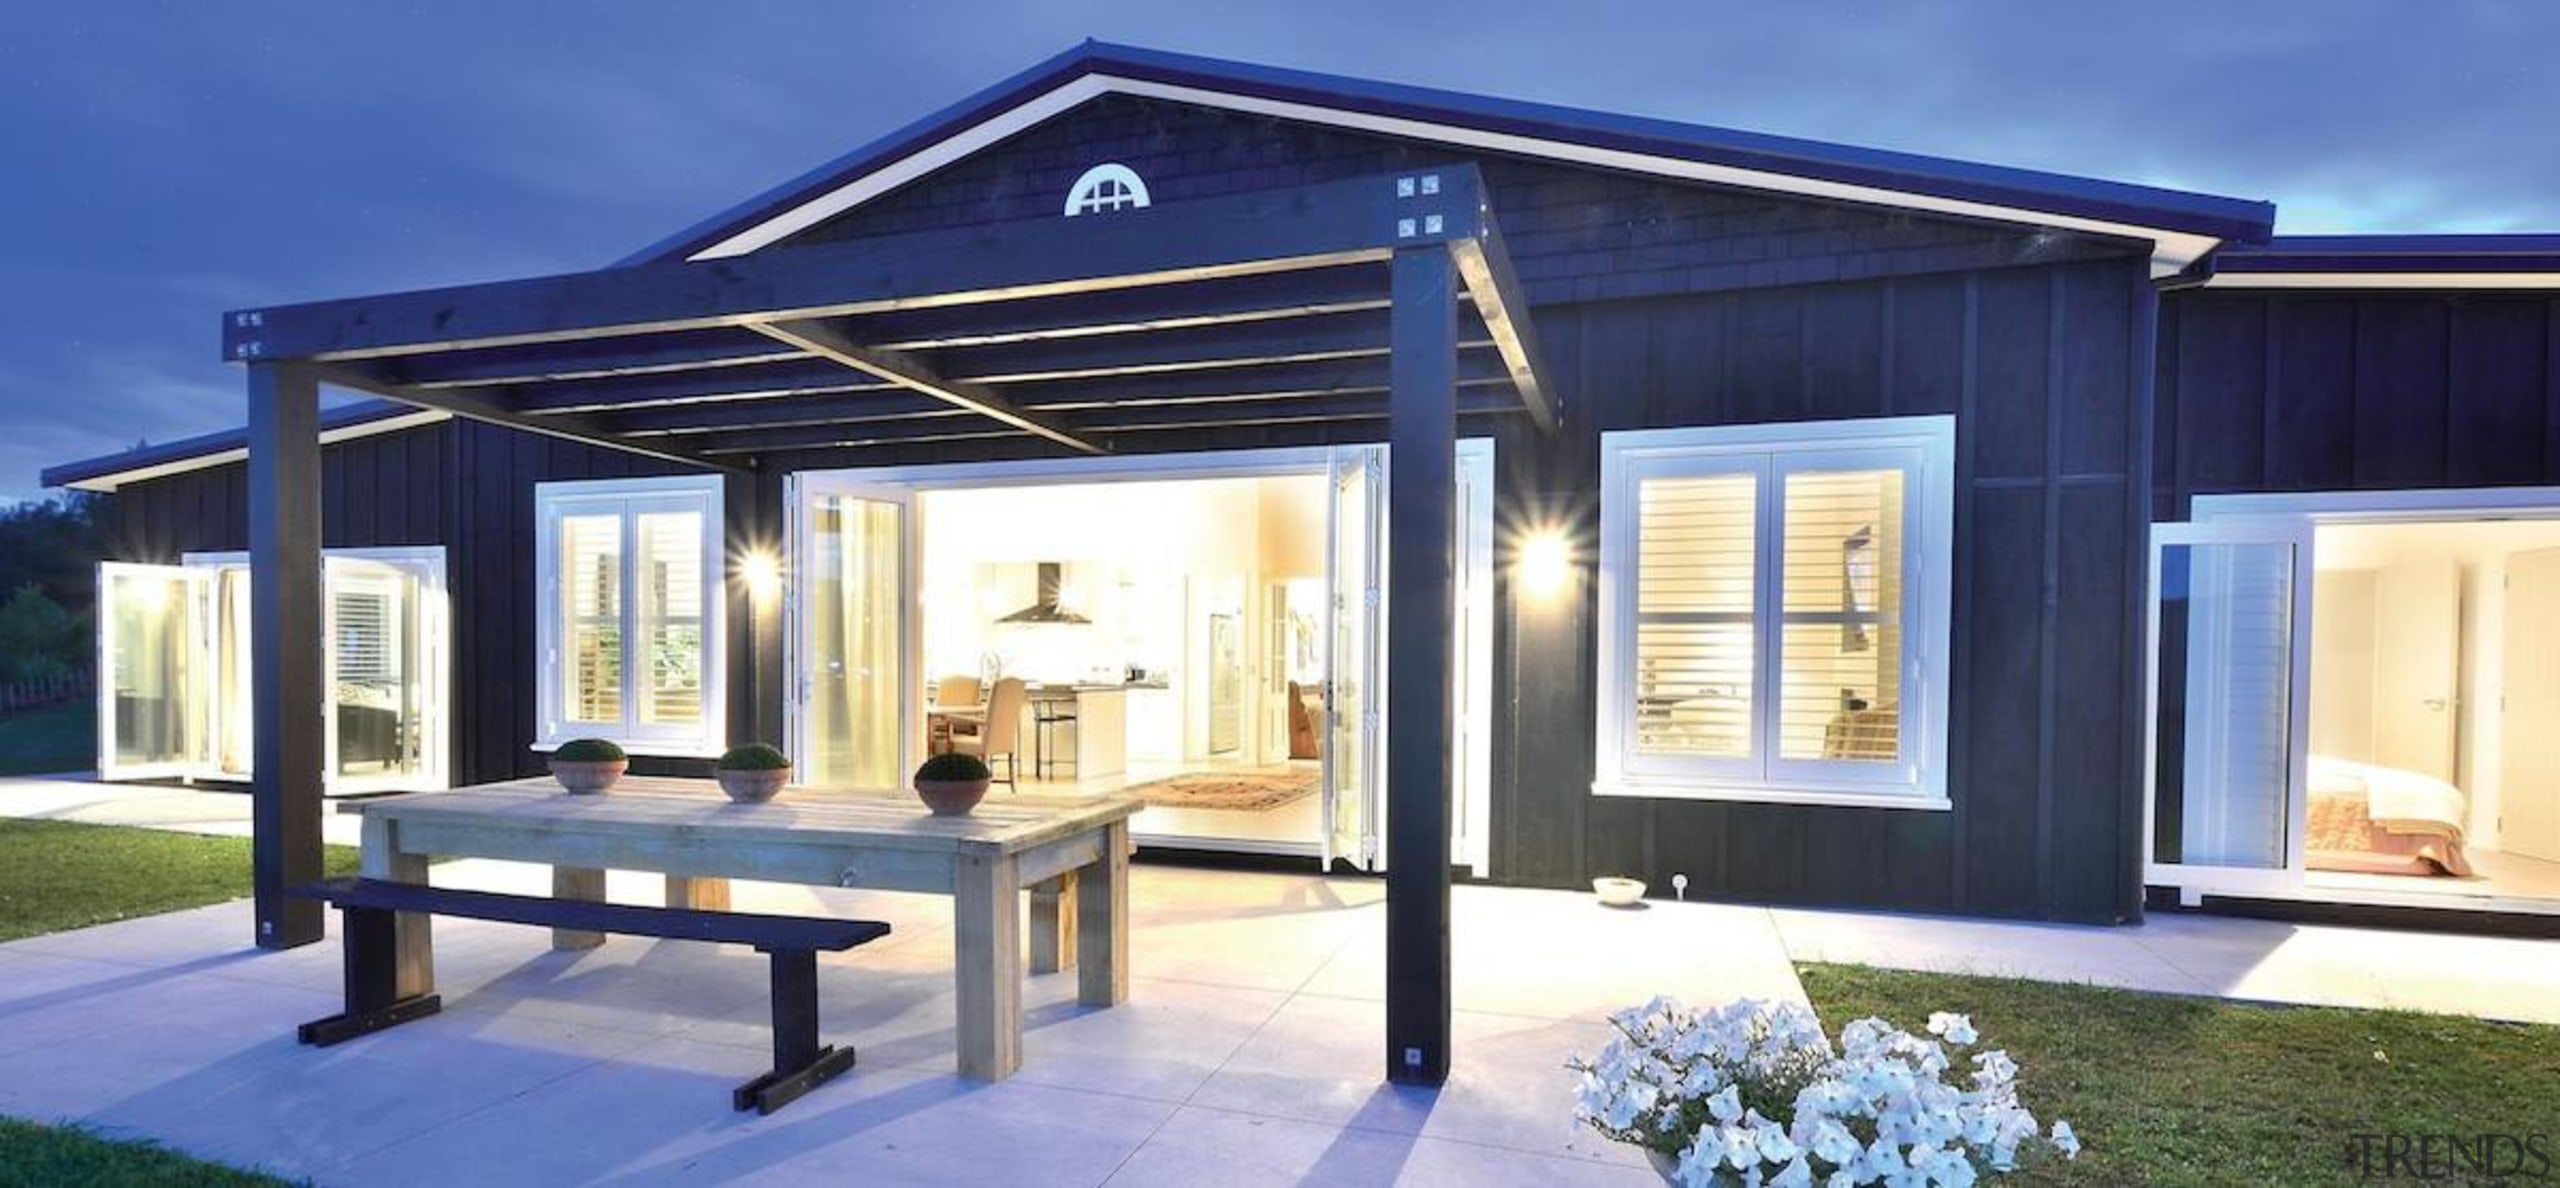 Pictured: Matakana Village Estate – Tim Cameron, 360 facade, home, house, property, real estate, roof, window, blue